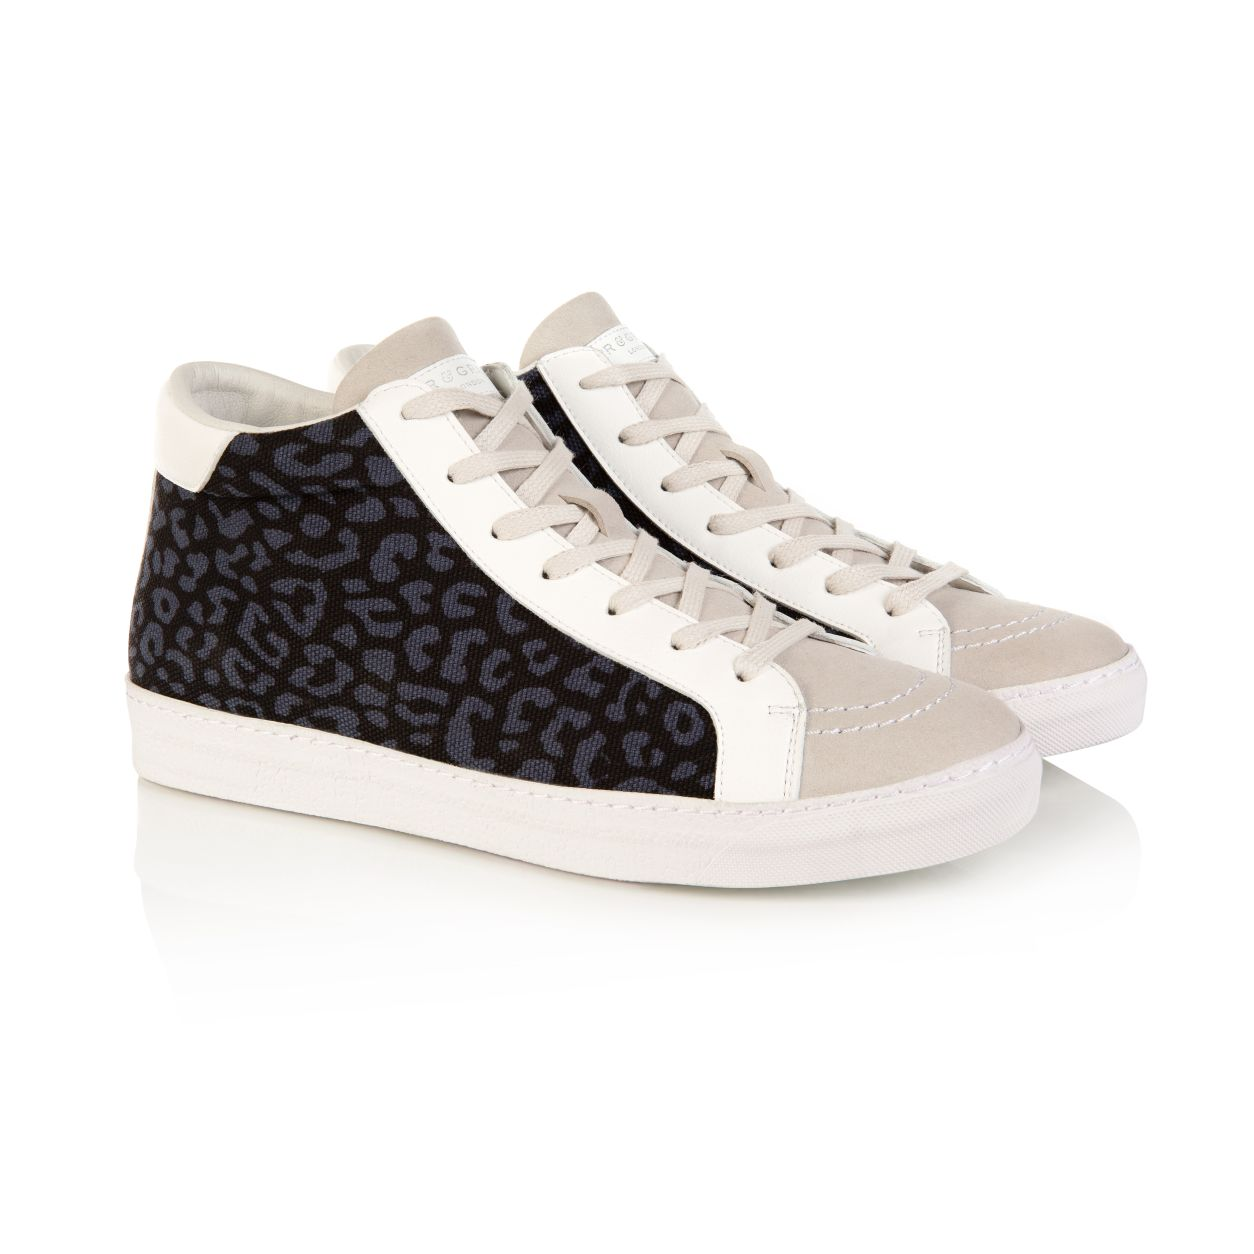 ALTO VEGAN: INDIGO LEOPARD PRINT HIGH TOPS - (PRE-ORDER - DISPATCH W/C 24TH AUGUST)